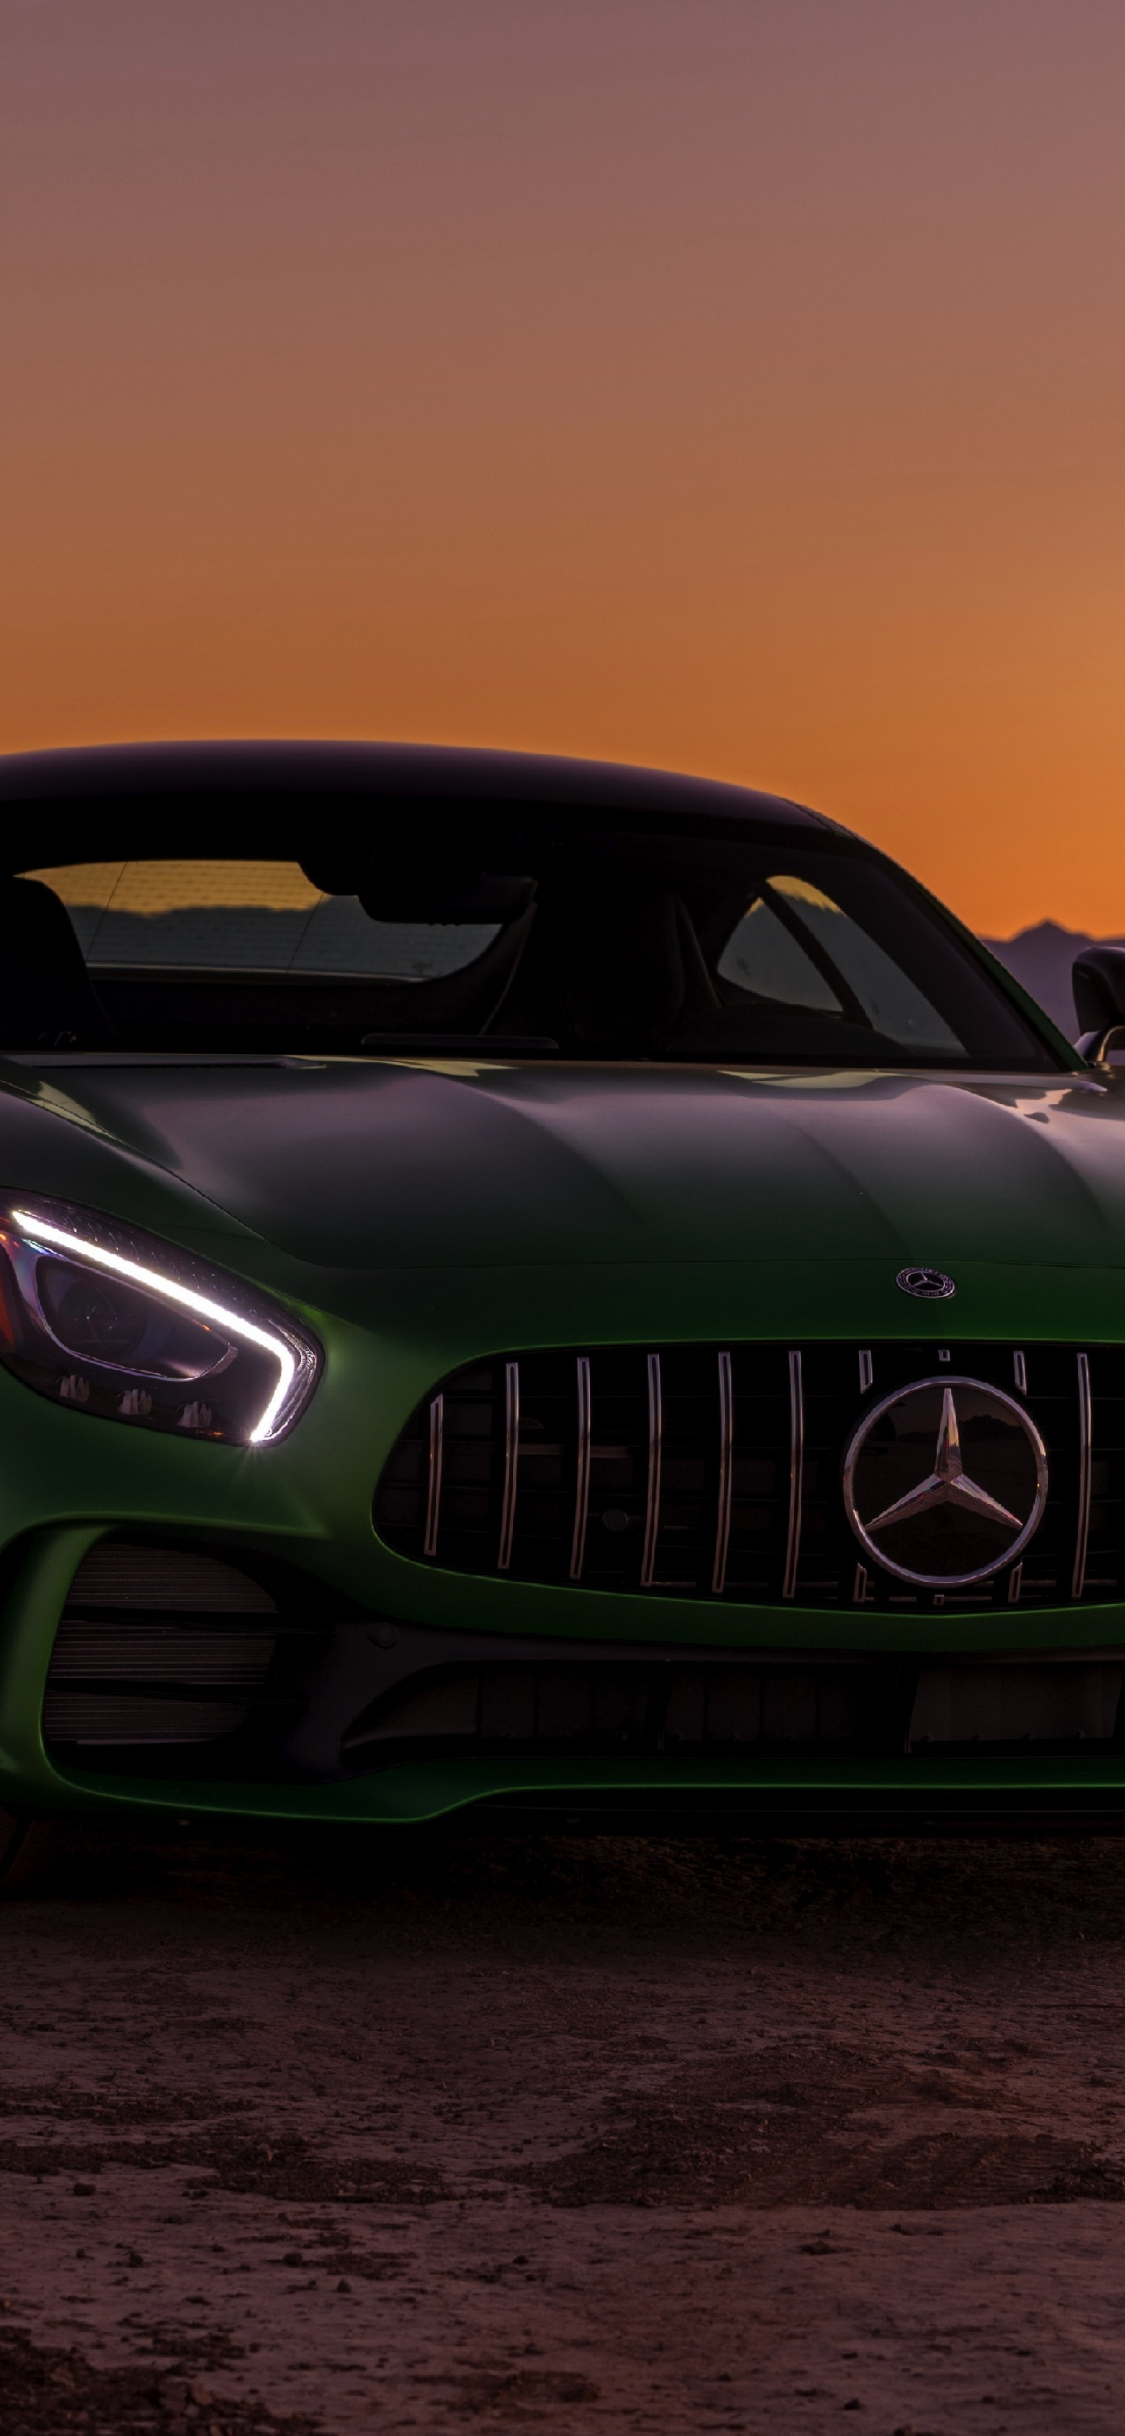 Download 1125x2436 Wallpaper The Mercedes Amg Gt R Sports